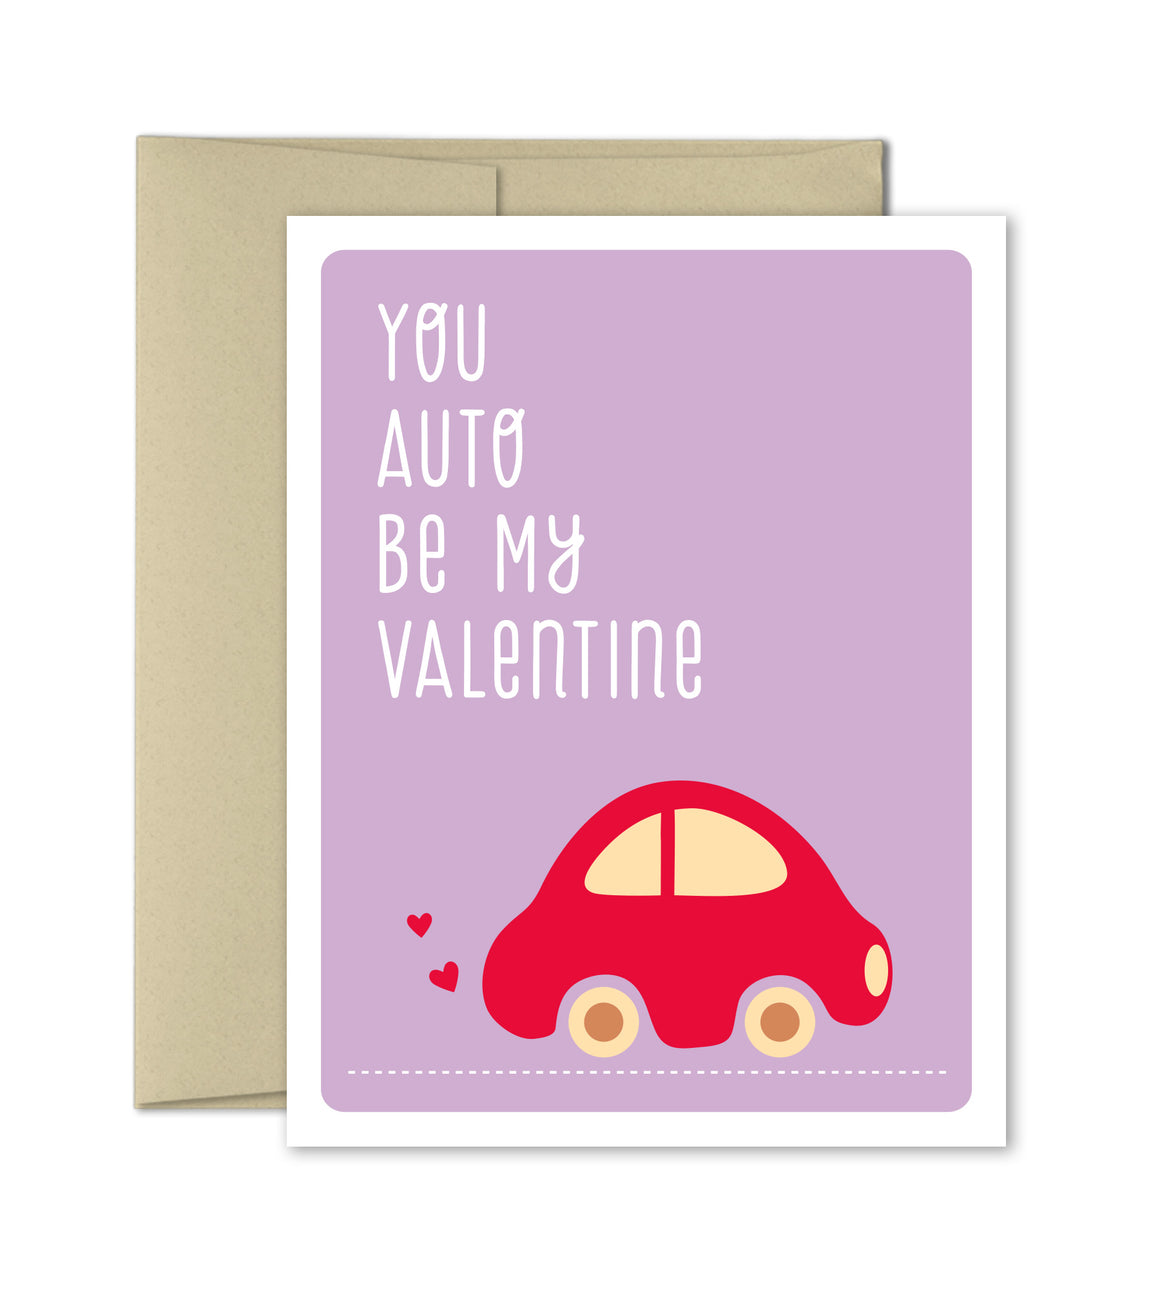 Valentines Card - Auto Be My Valentine - The Imagination Spot